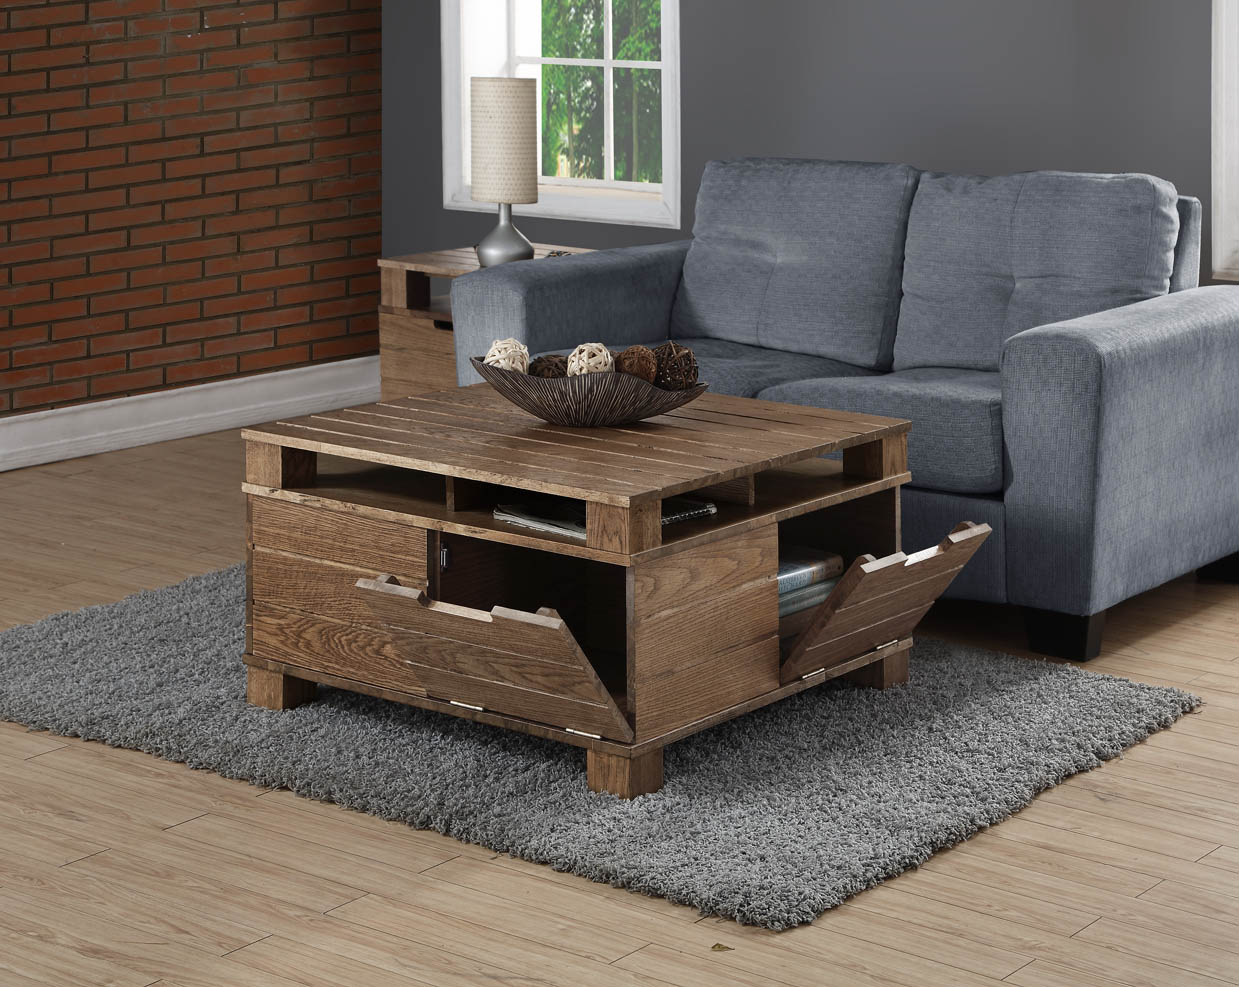 Jual Rustic Oak Coffee Table 1